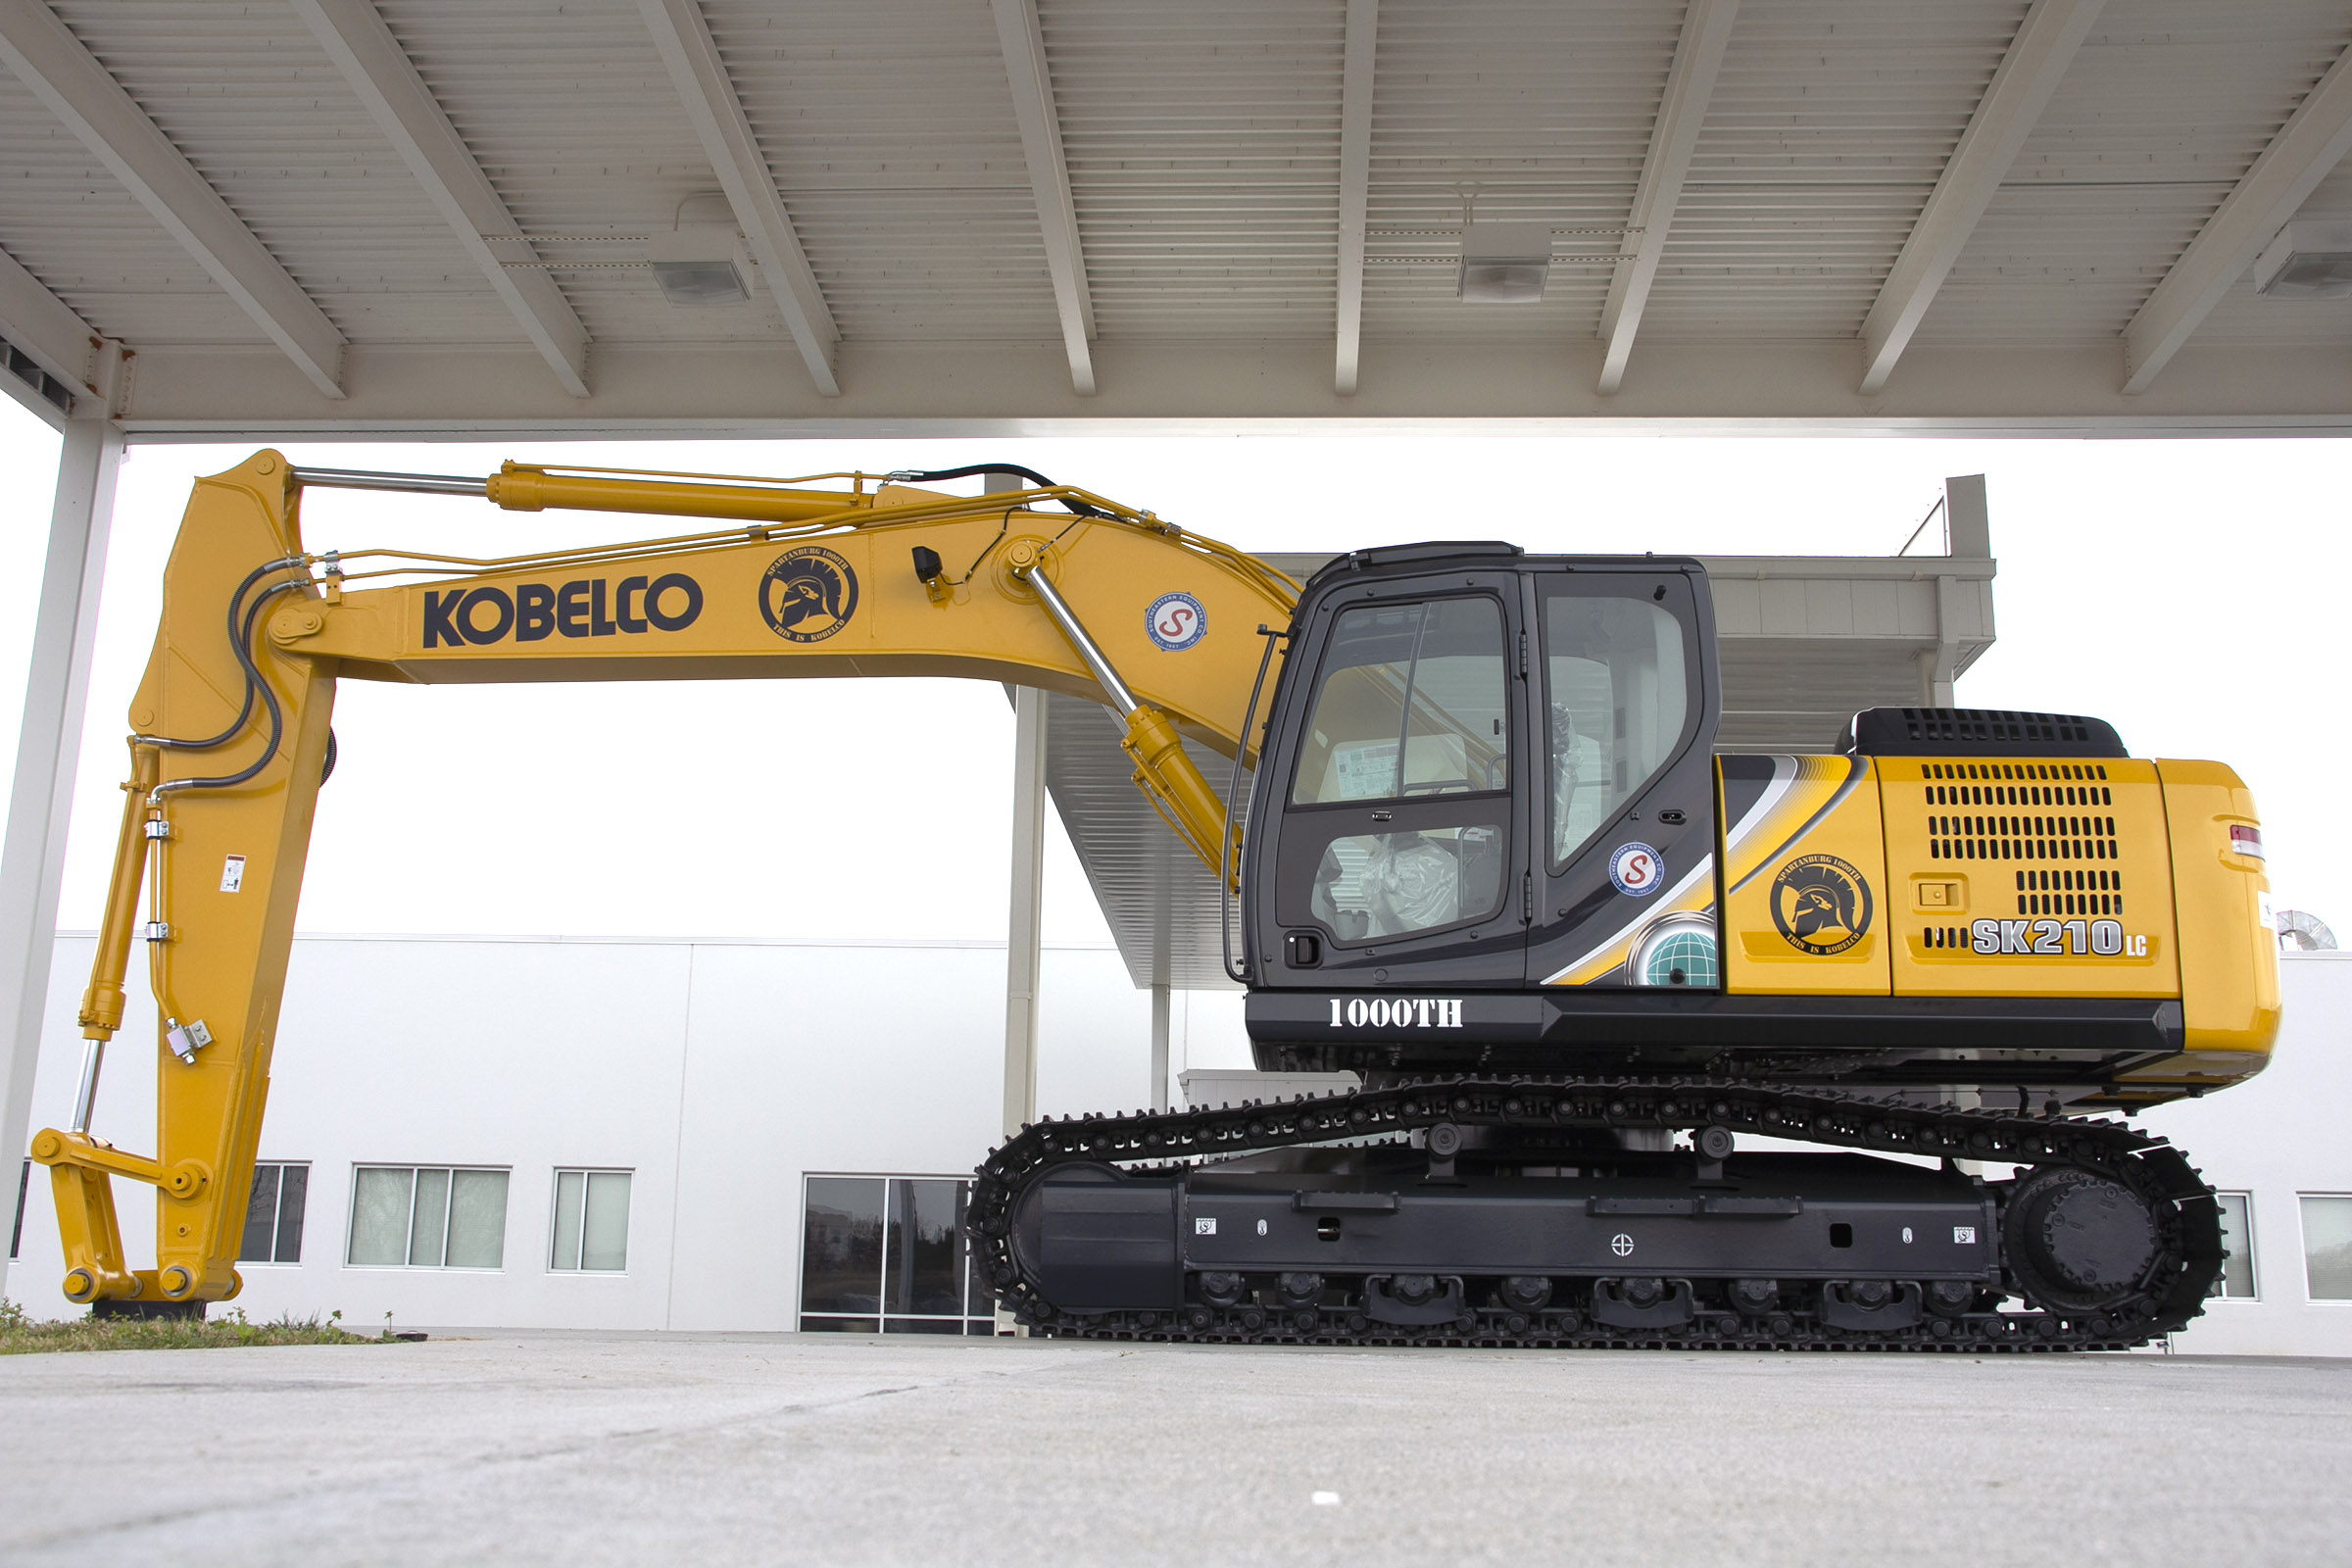 KOBELCO Celebrates Production Of 1000th Excavator At USA